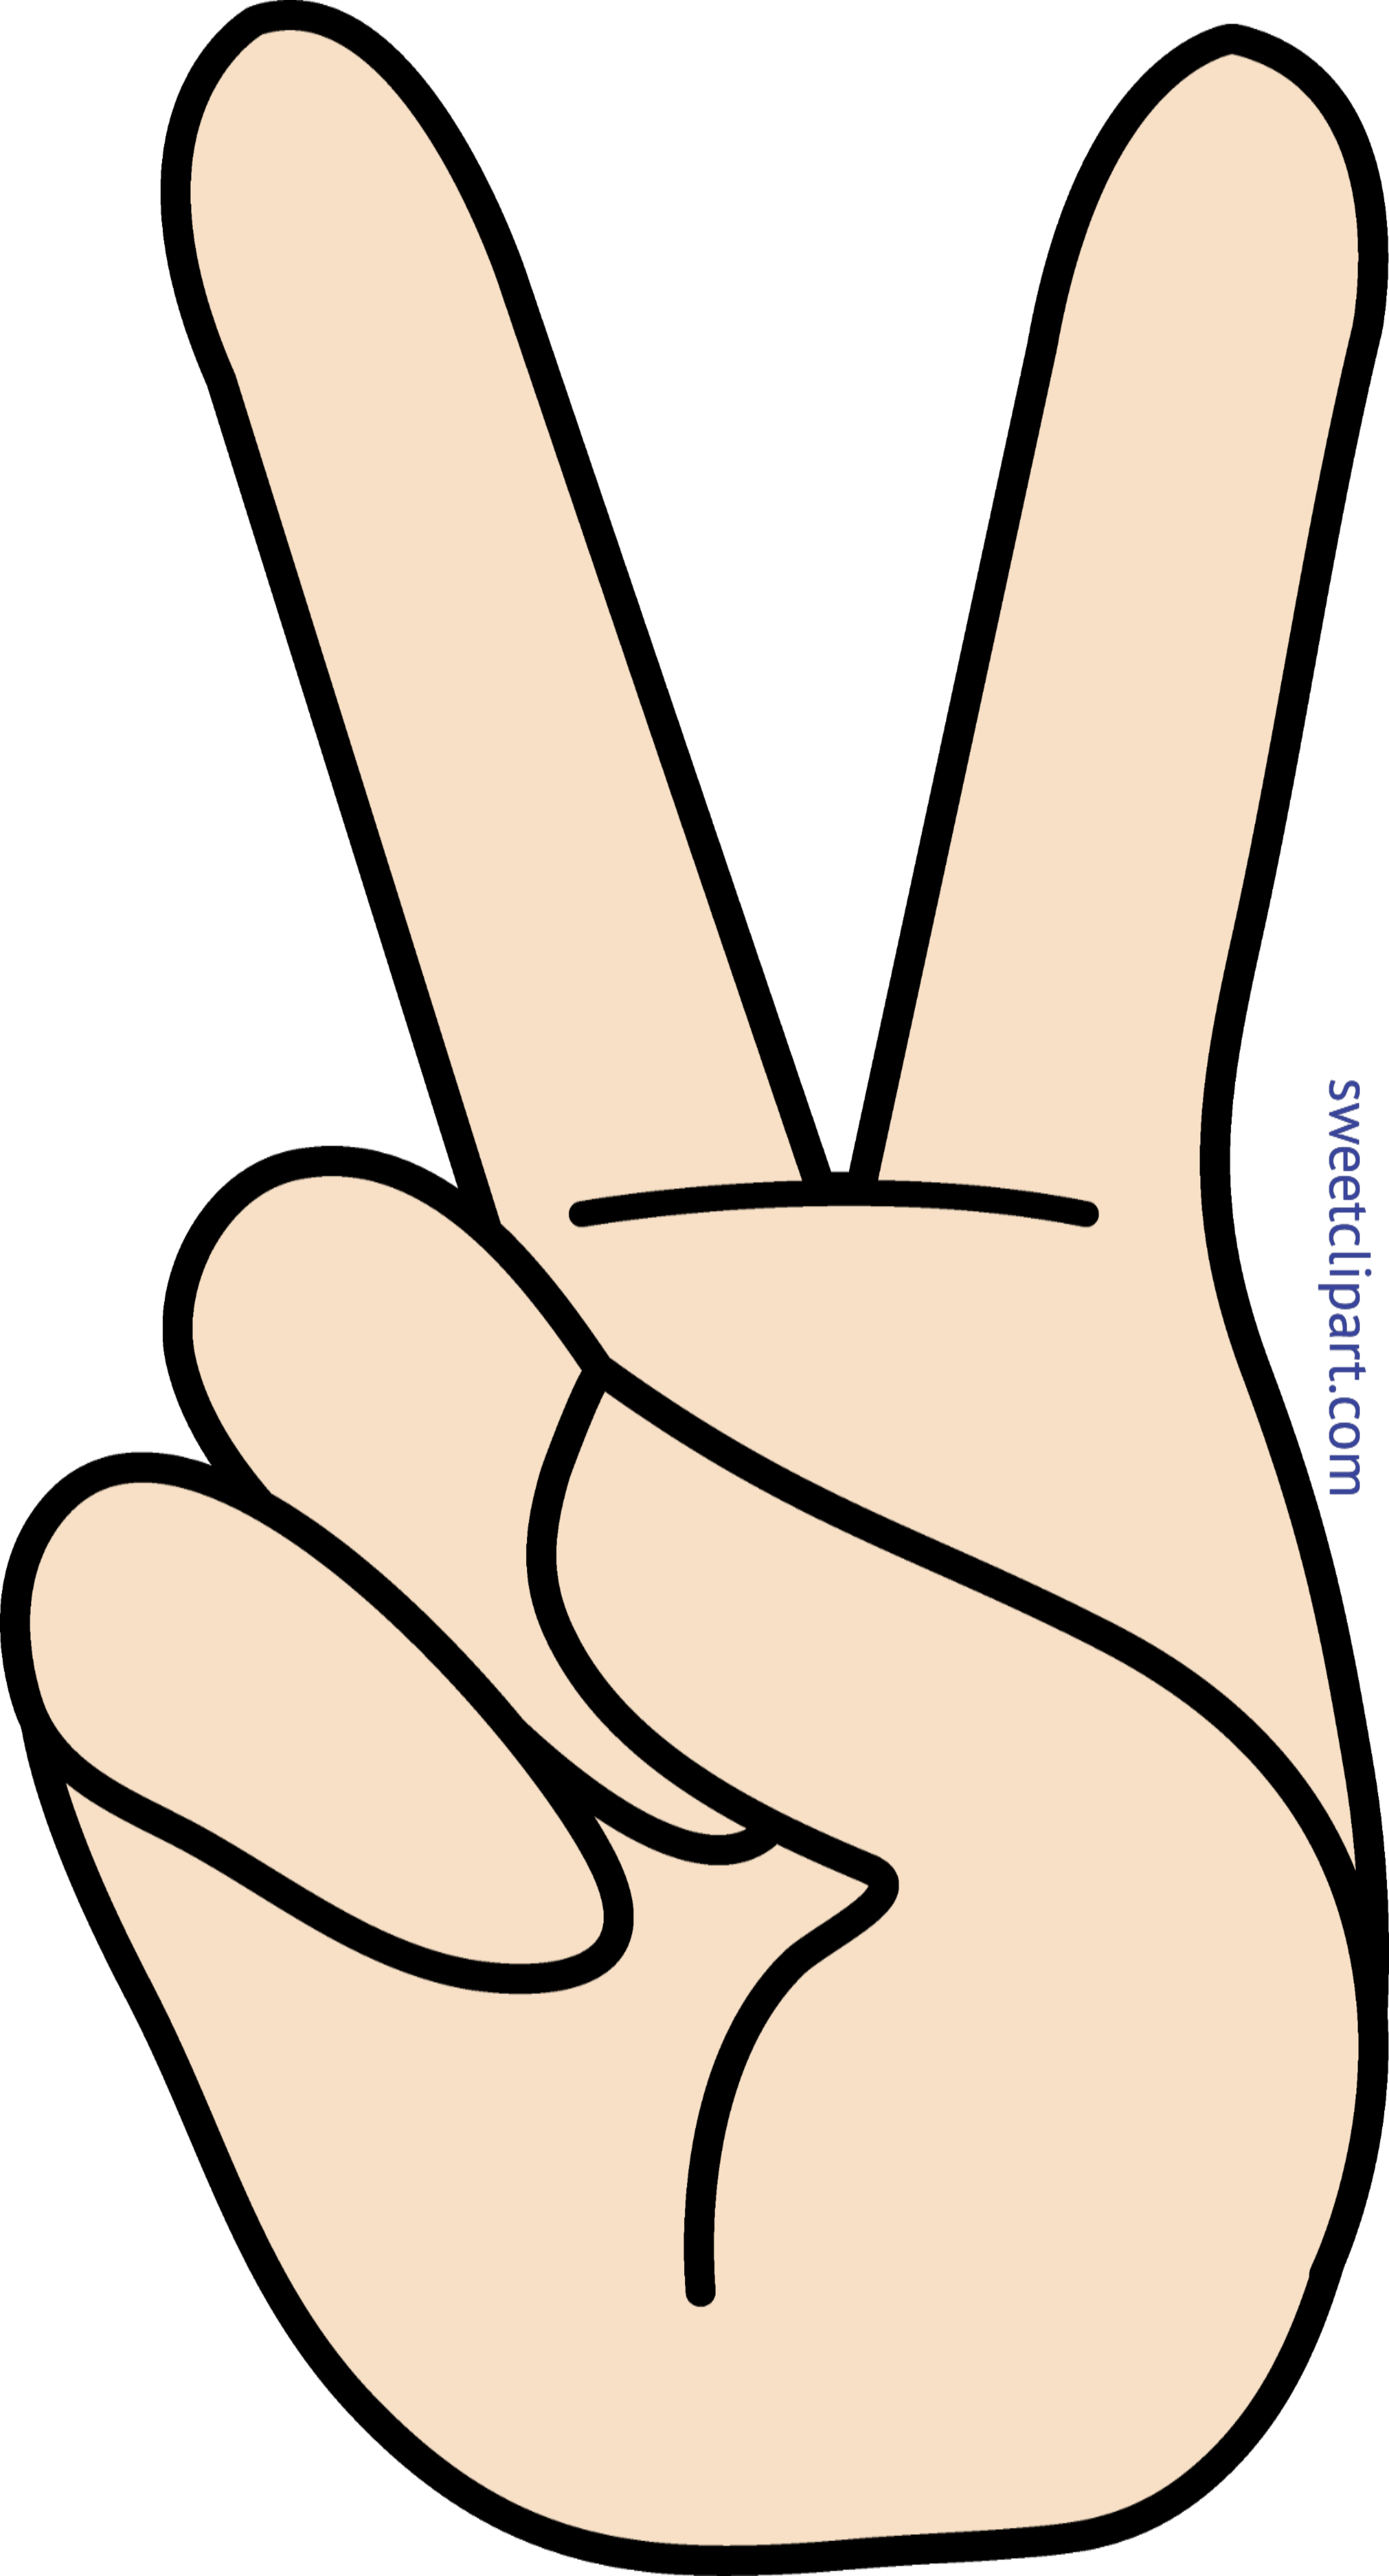 Legs hands clipart png. Peace hand sign clip